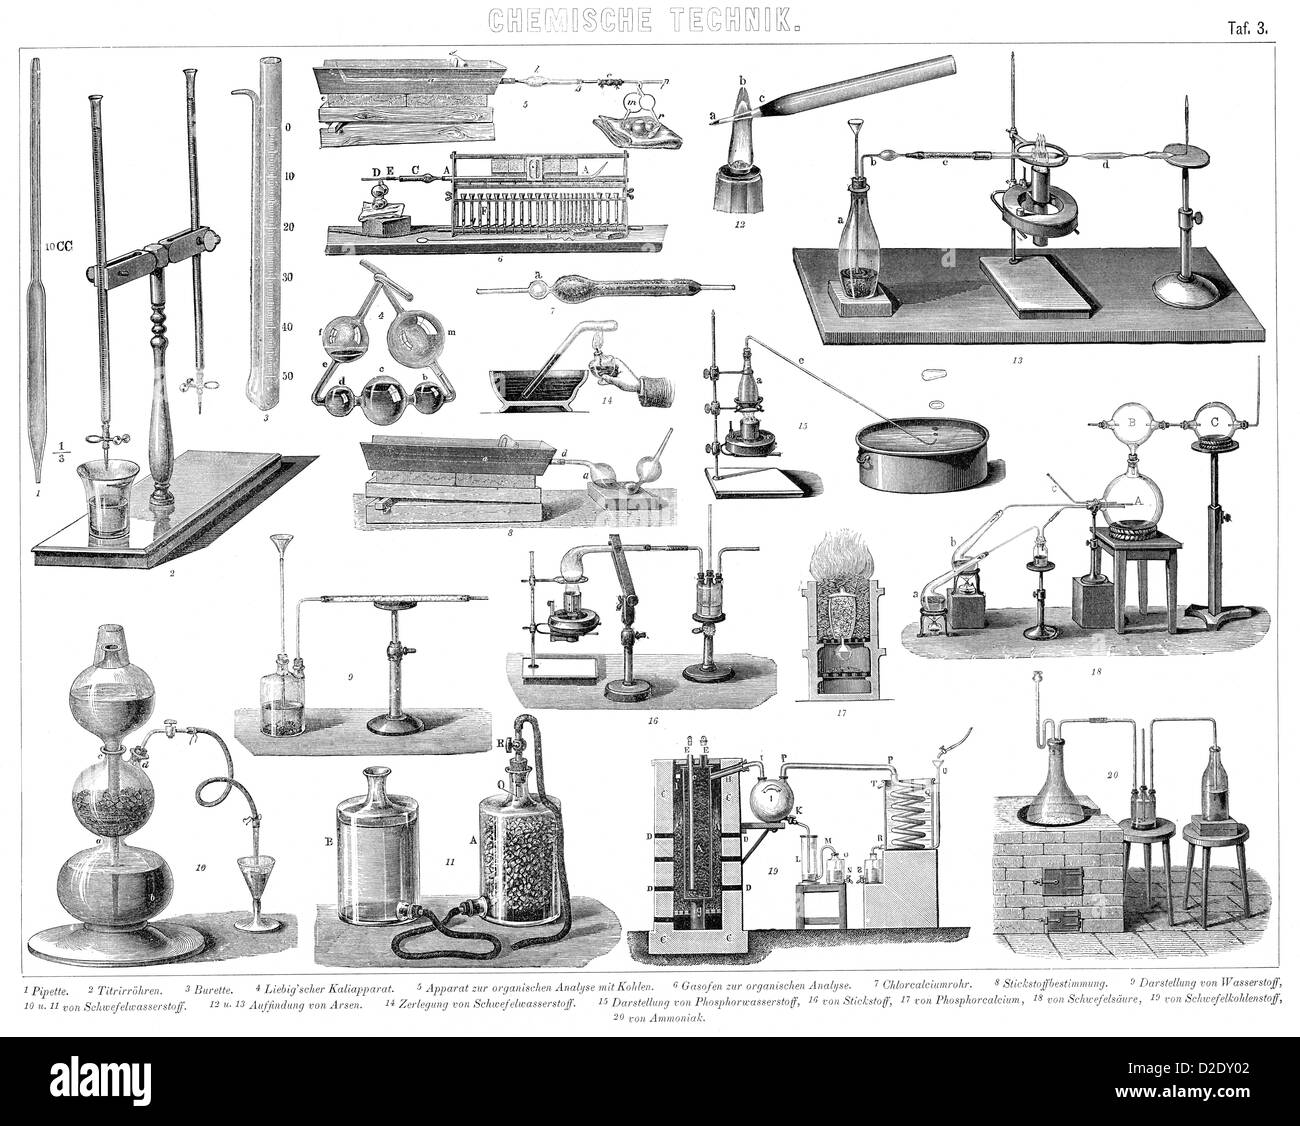 Vintage Chemistry Equipment From The 19th Century Stock